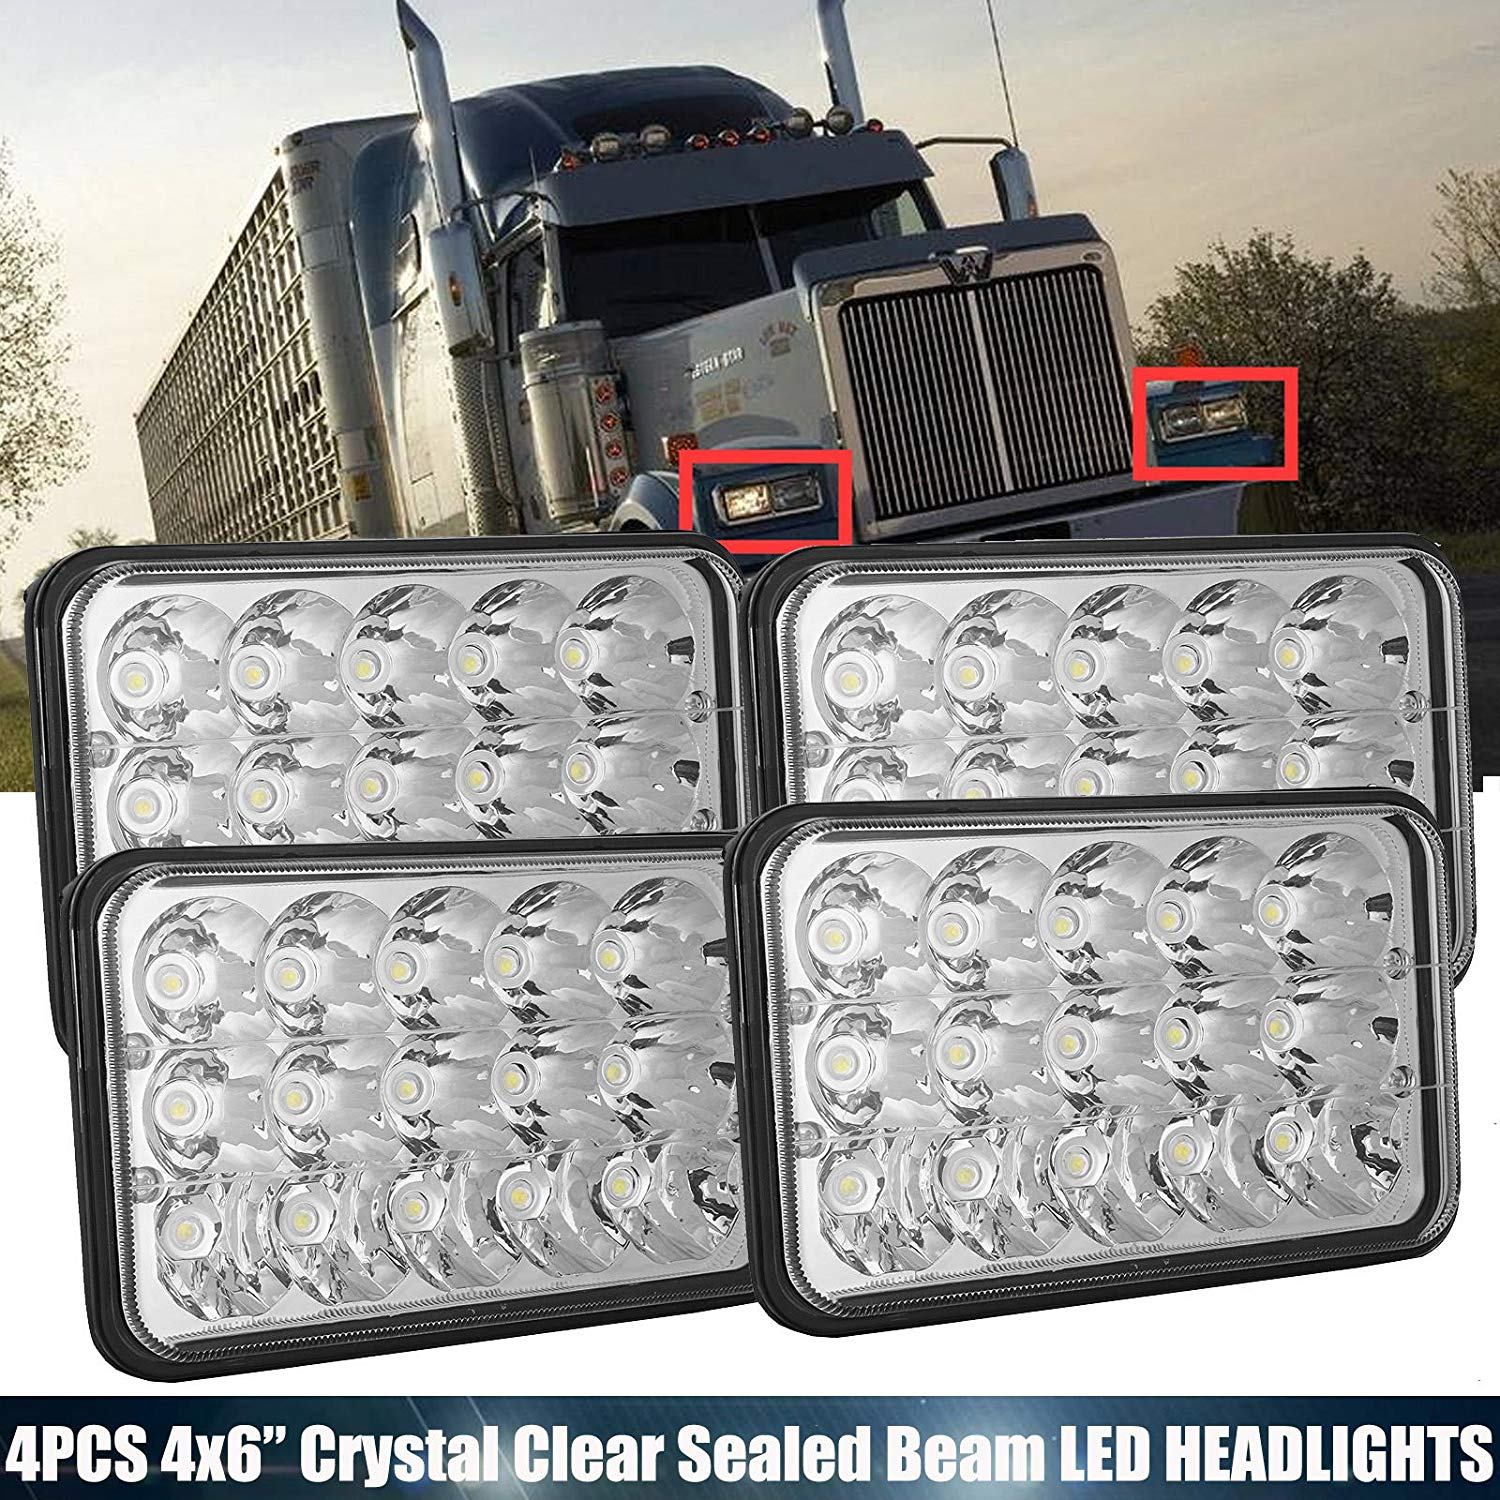 4PCS 4X6 Rectangular LED Headlights Clear Sealed Beam Upgrade Lights for International Harvester 9300 Trucks, High/Low Bright 6000K White H4 Plug H4651 H4642 H4652 H4656 H4666 H4668 H6545 Replacement